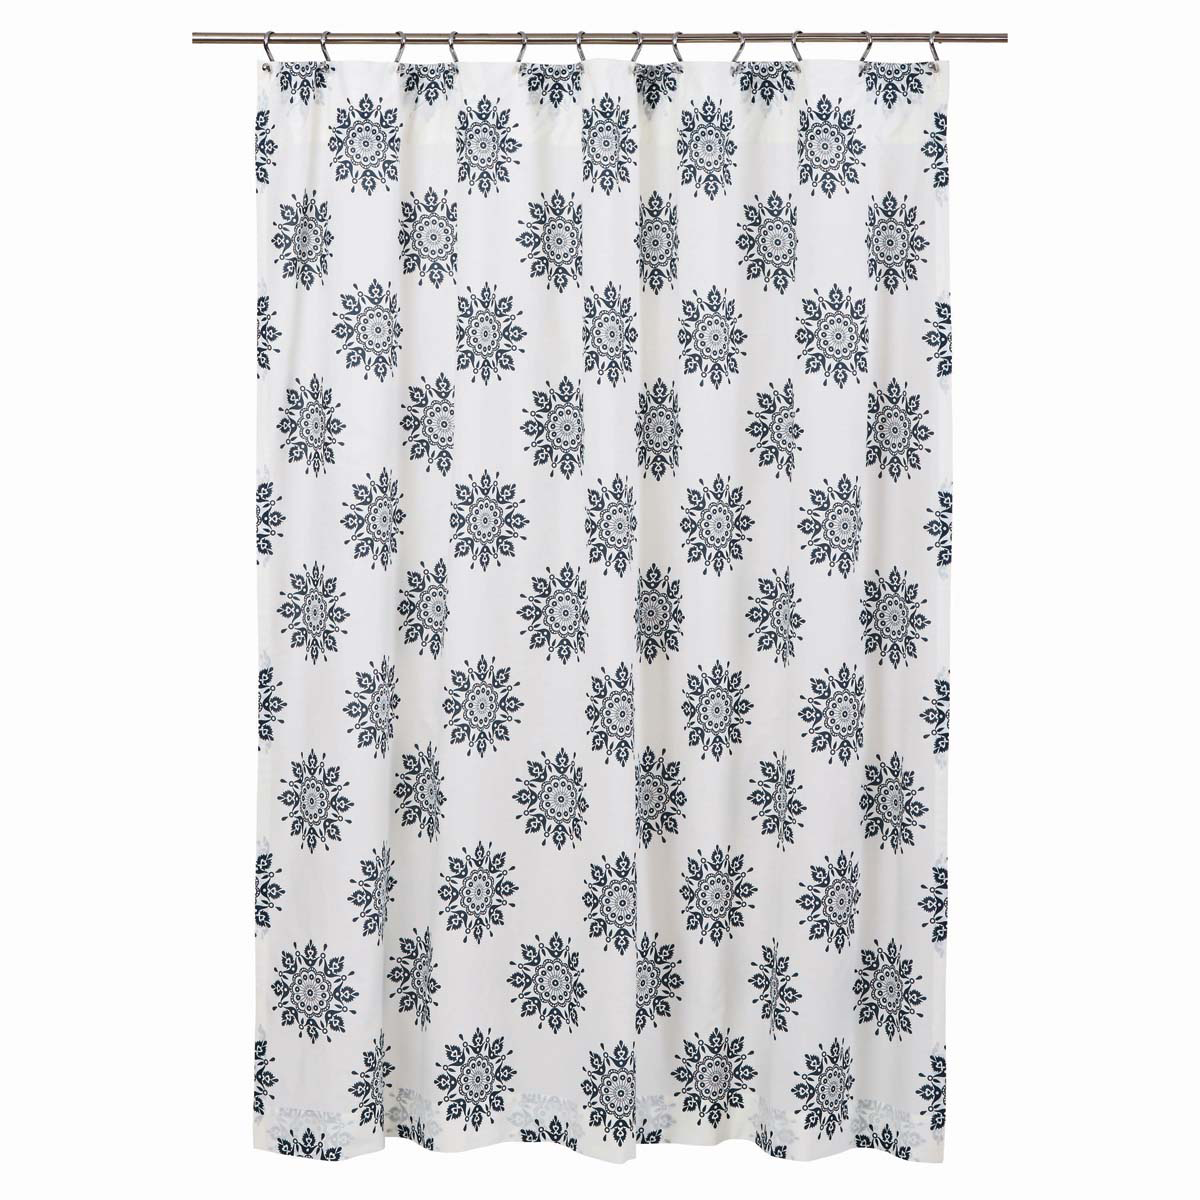 Mariposa Shower Curtain - Indigo - Vhc Brands